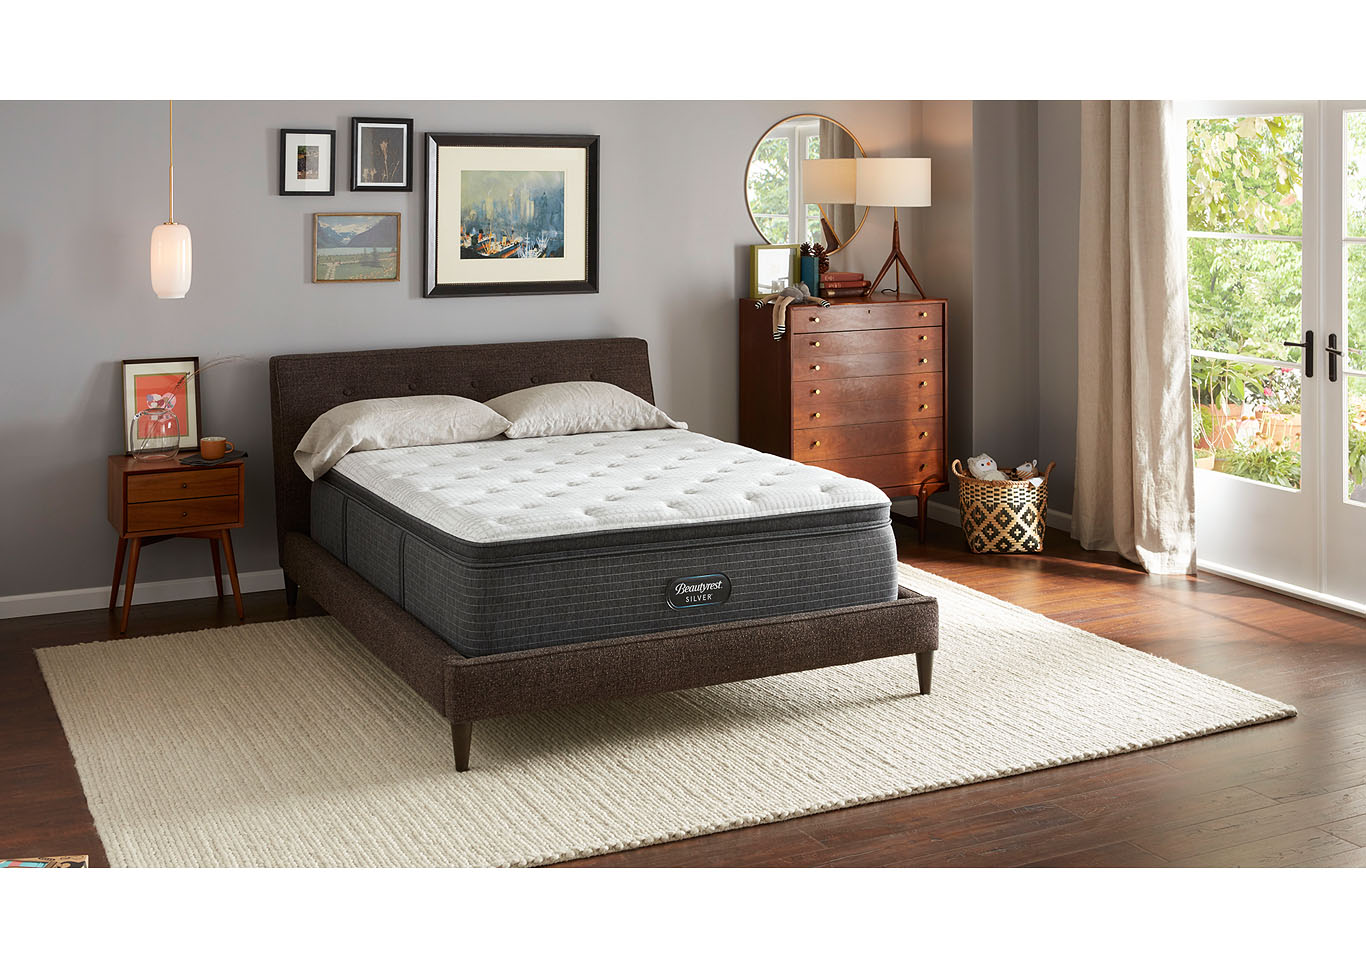 Beautyrest Silver South Bend Medium Pillow Top Mattress Only Full,Instore